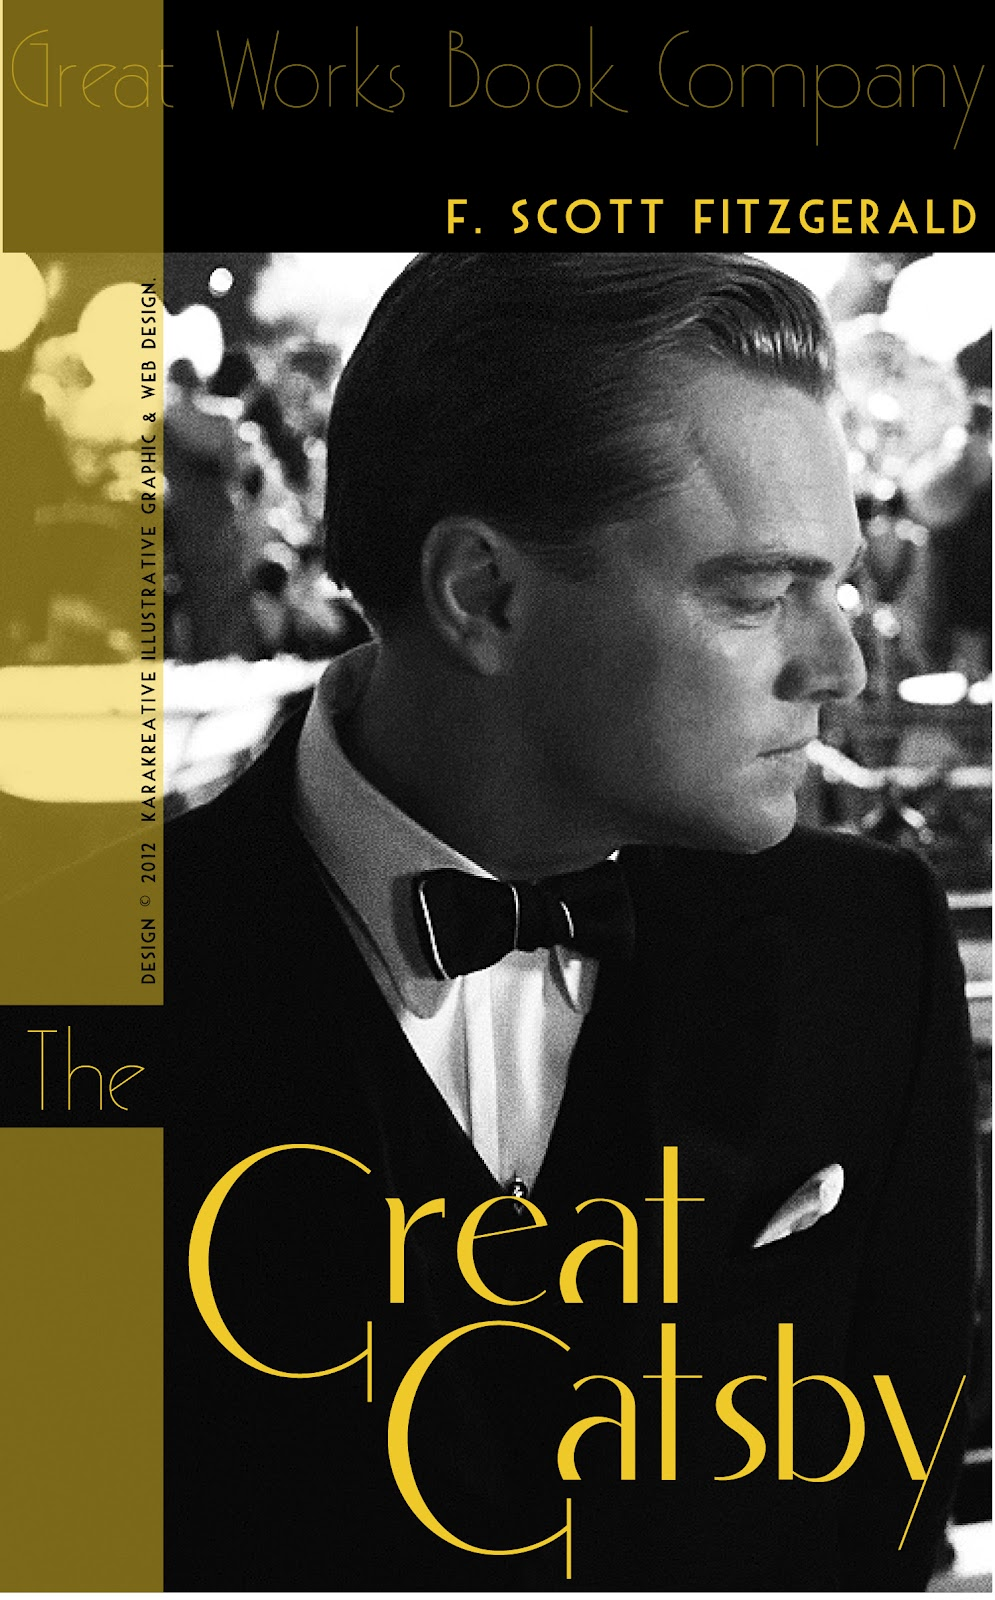 """KaraKreative: """"The Great Gatsby"""" Book Covers and Movie ..."""